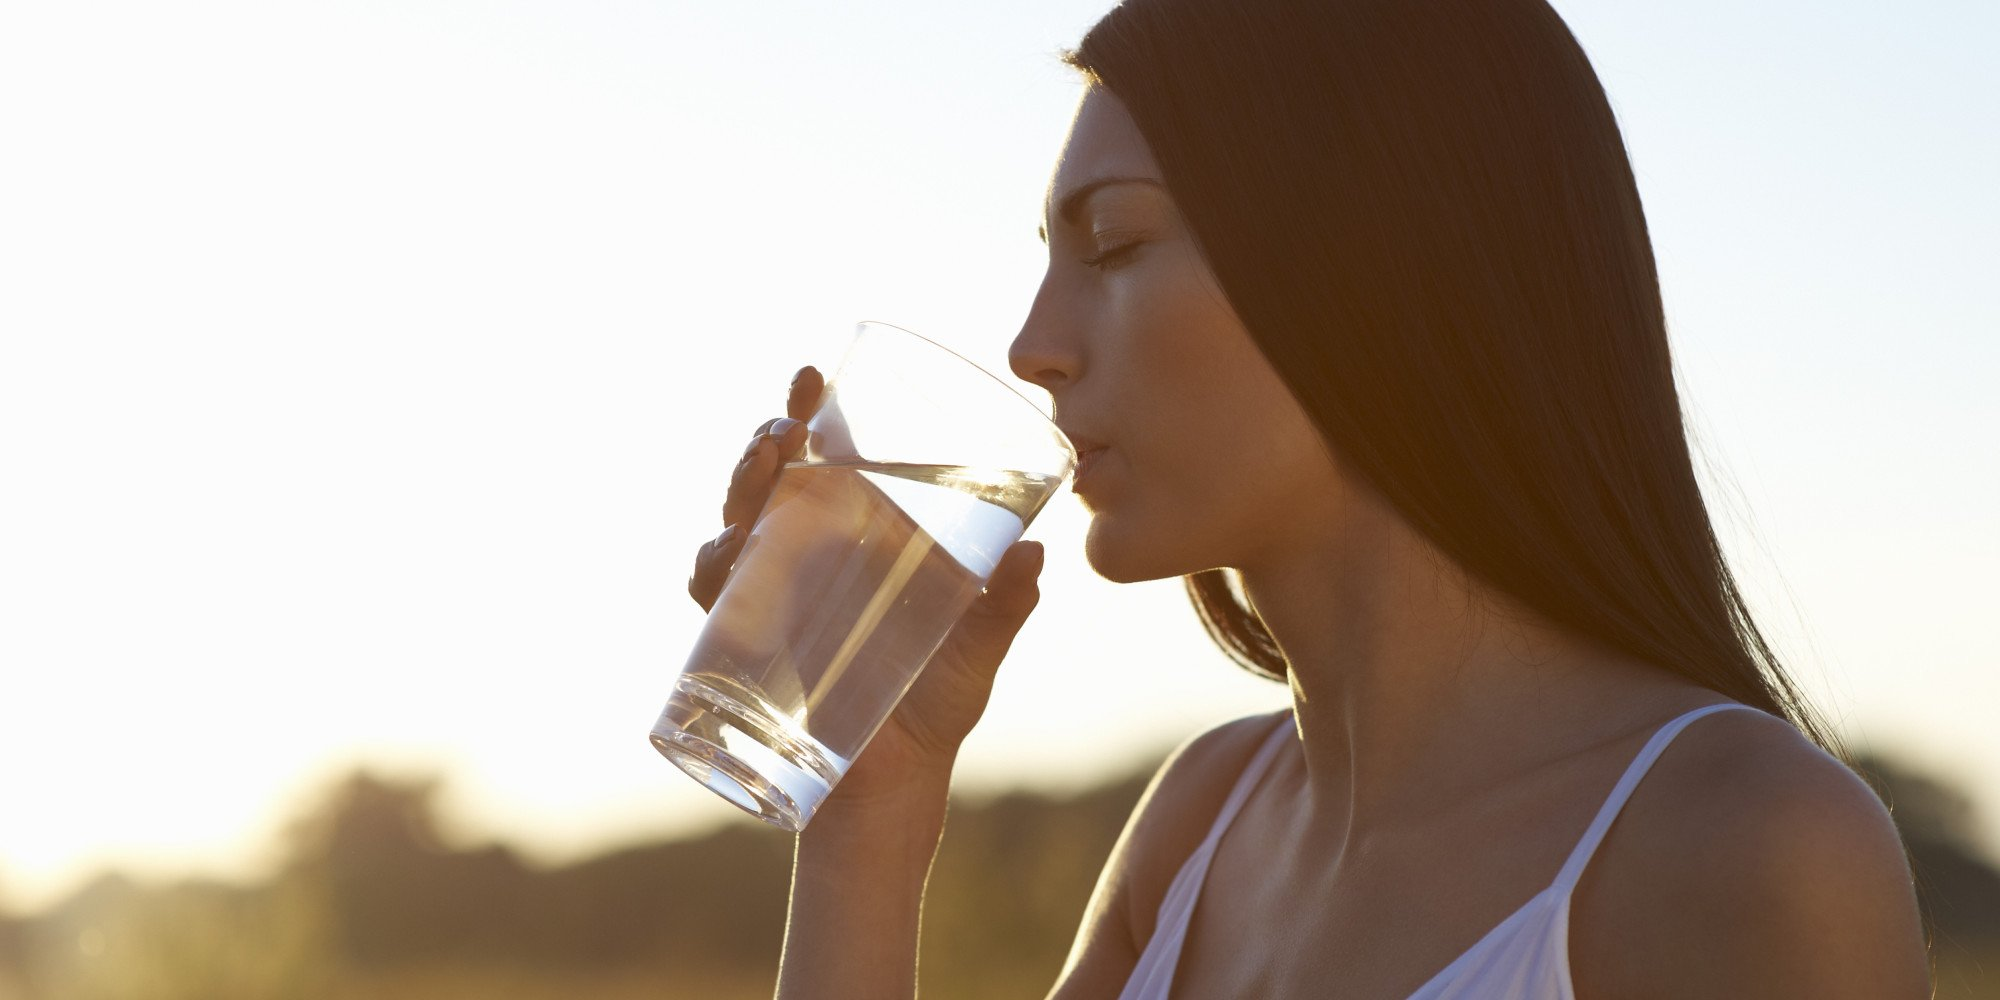 Profile of woman drinking water on hot Summers day